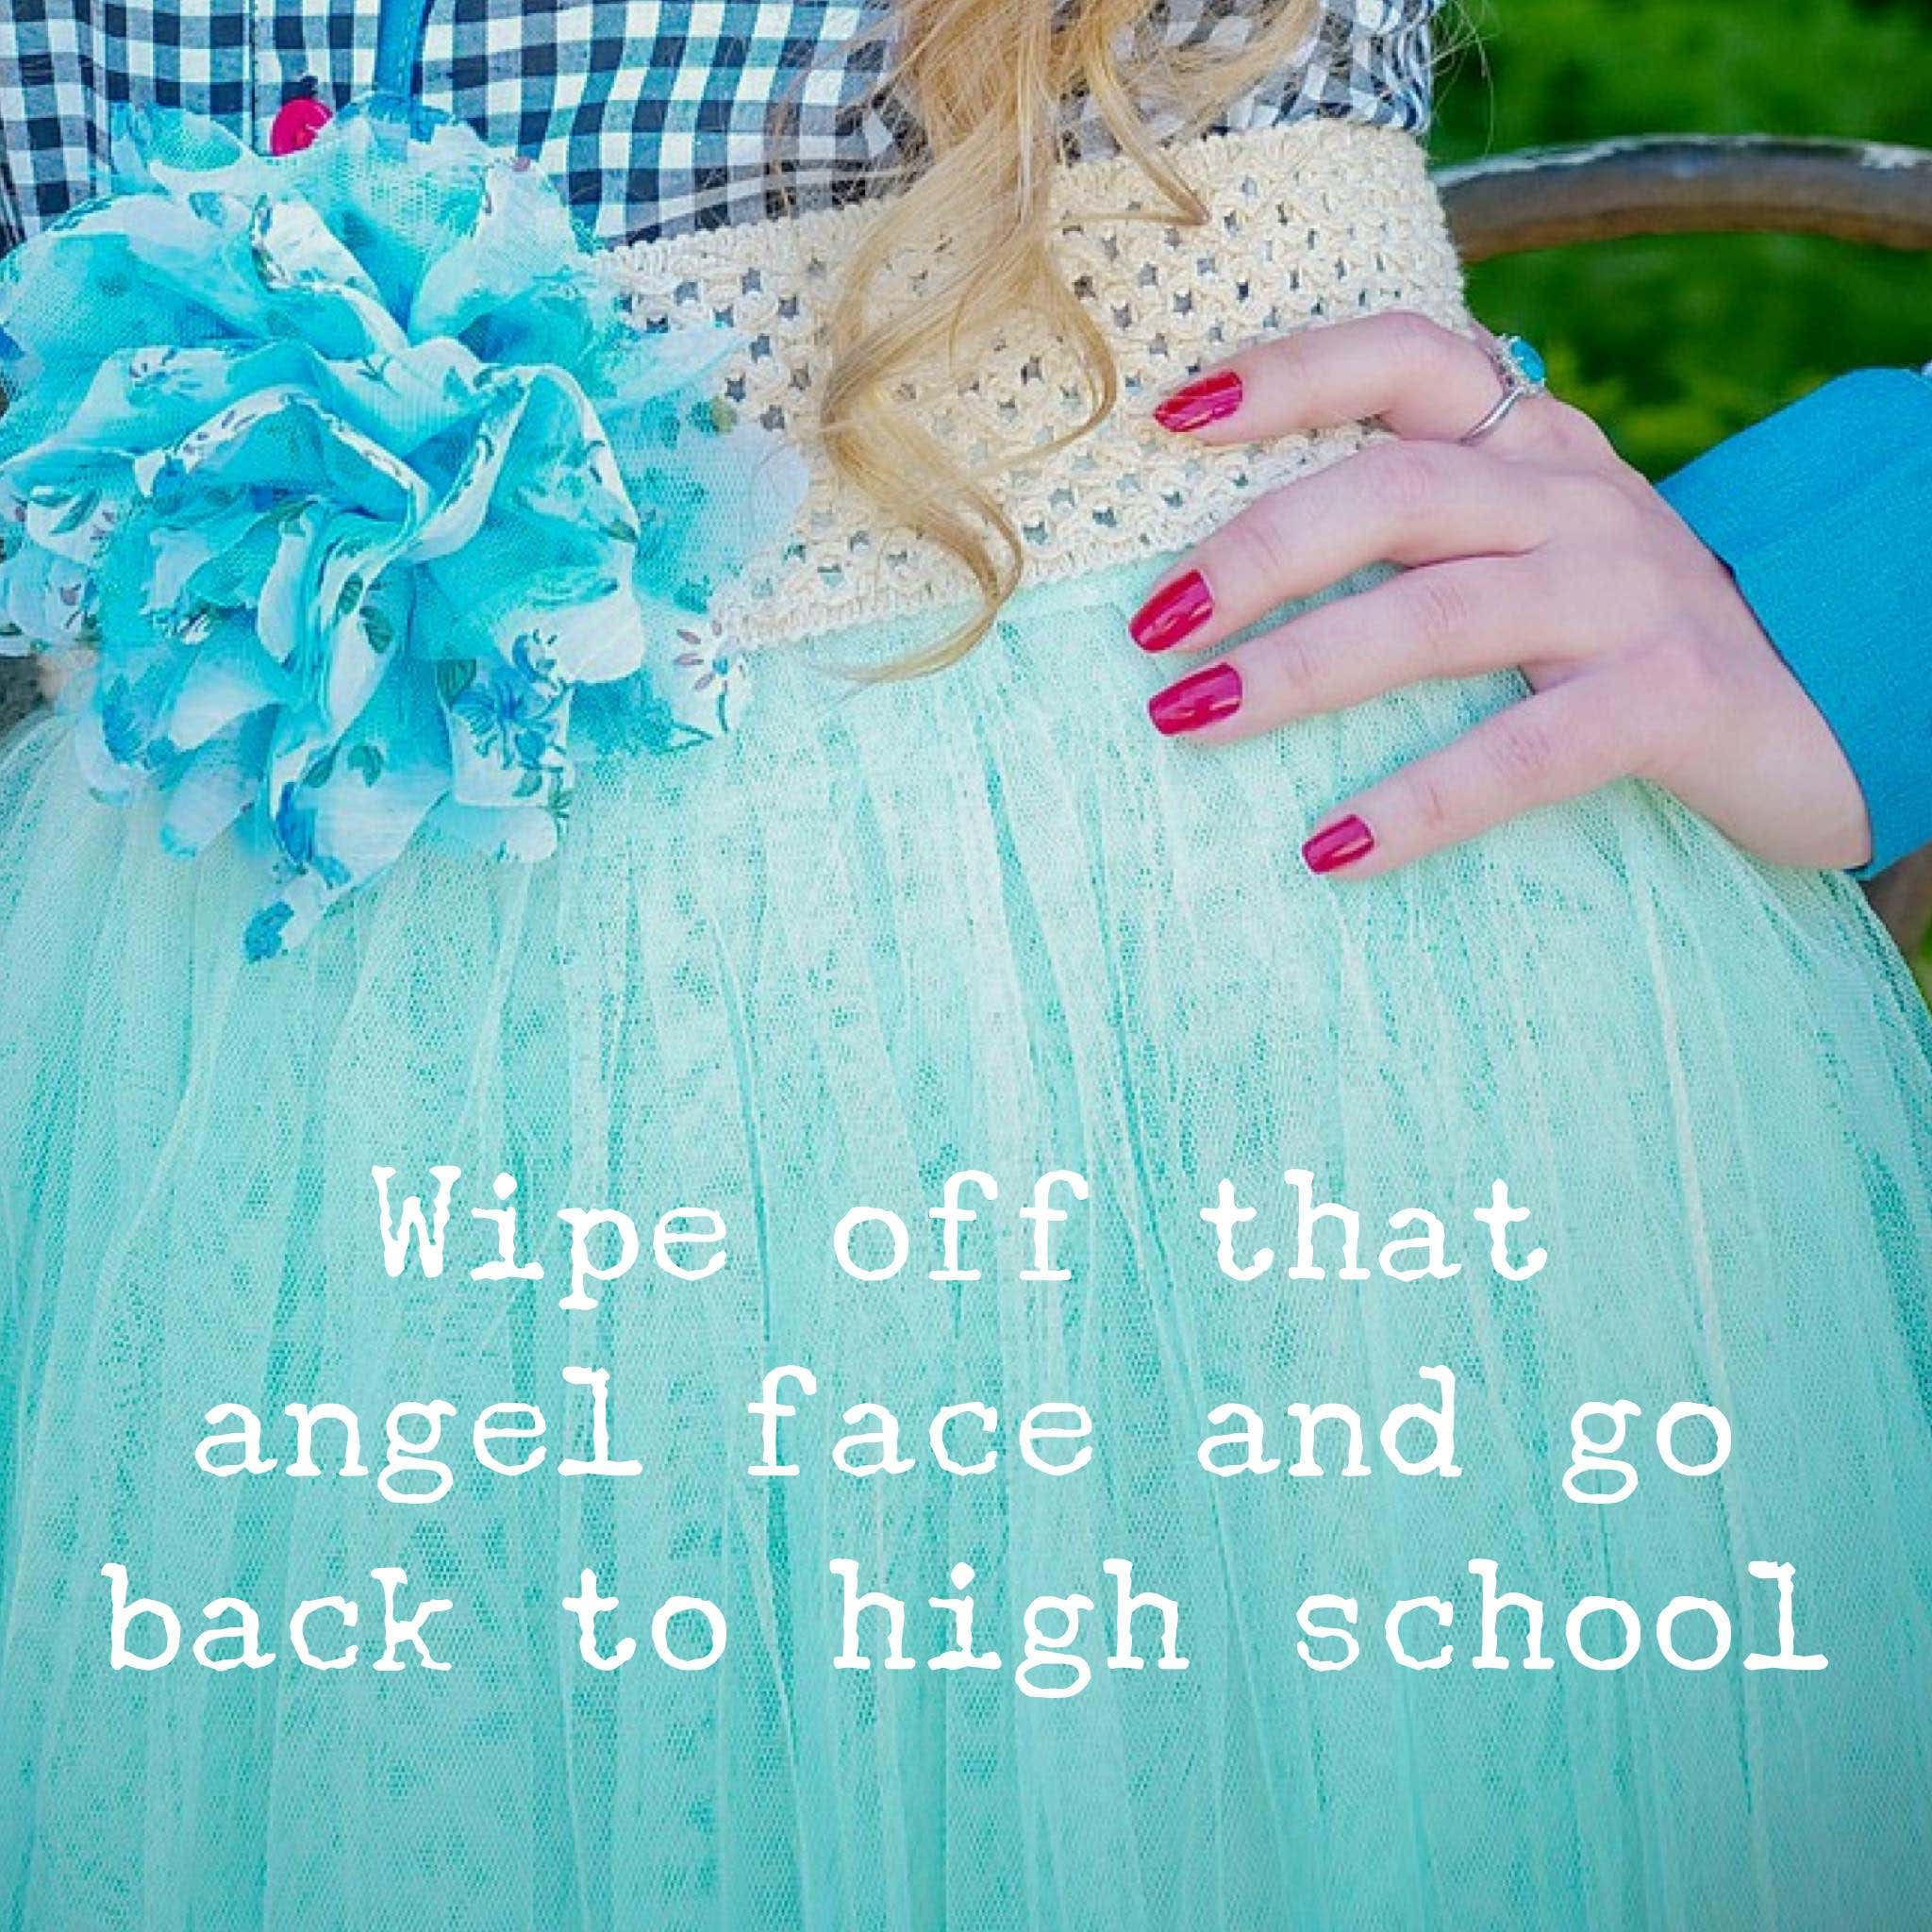 Wipe off that angel face and go back to high school